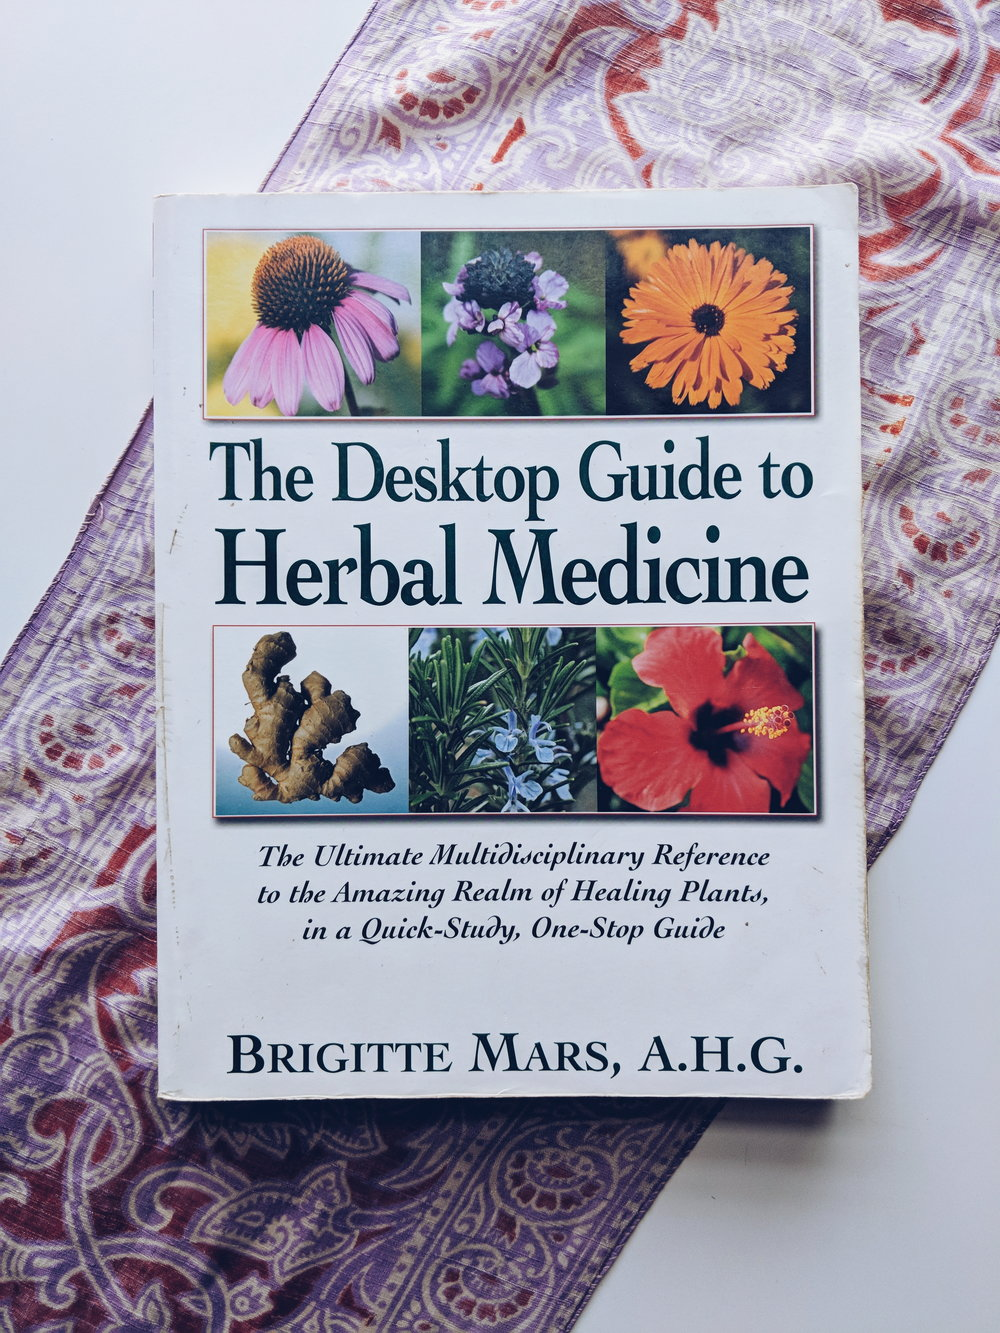 Desktop guide to herbal medicine